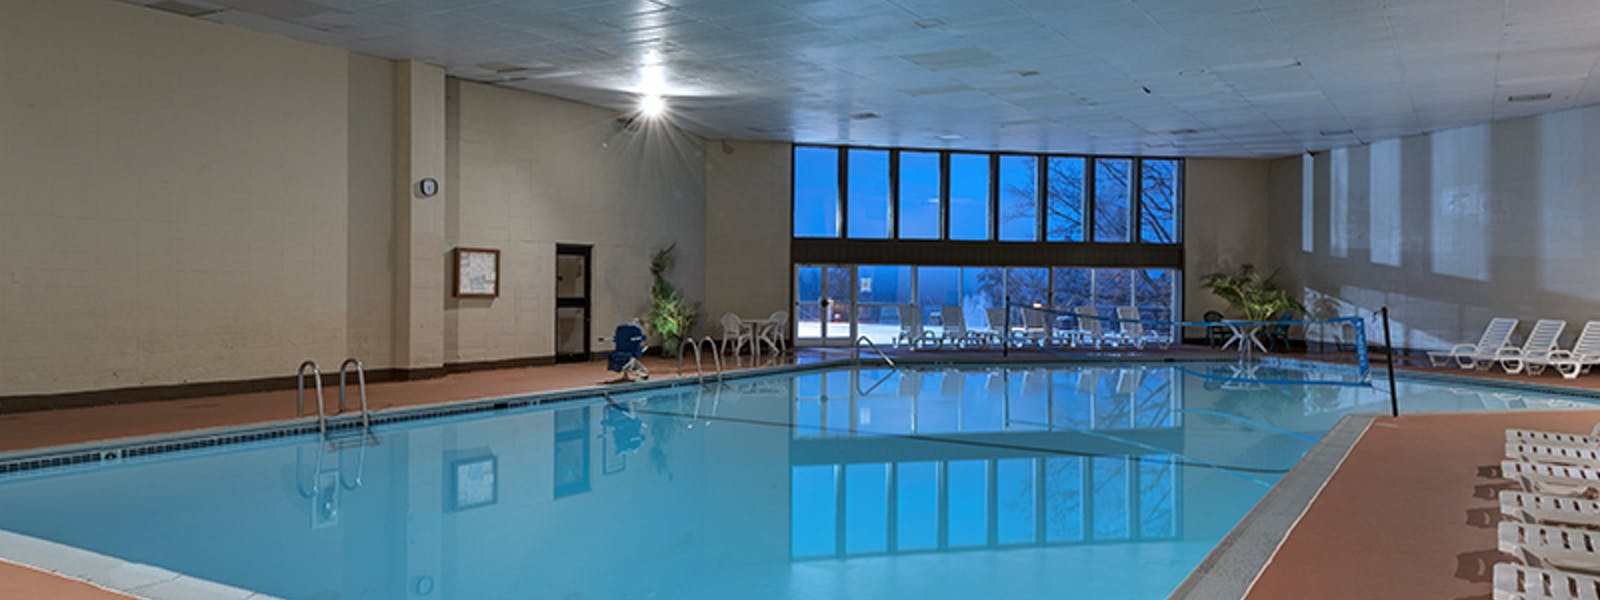 Mountain Laurel Indoor Pool